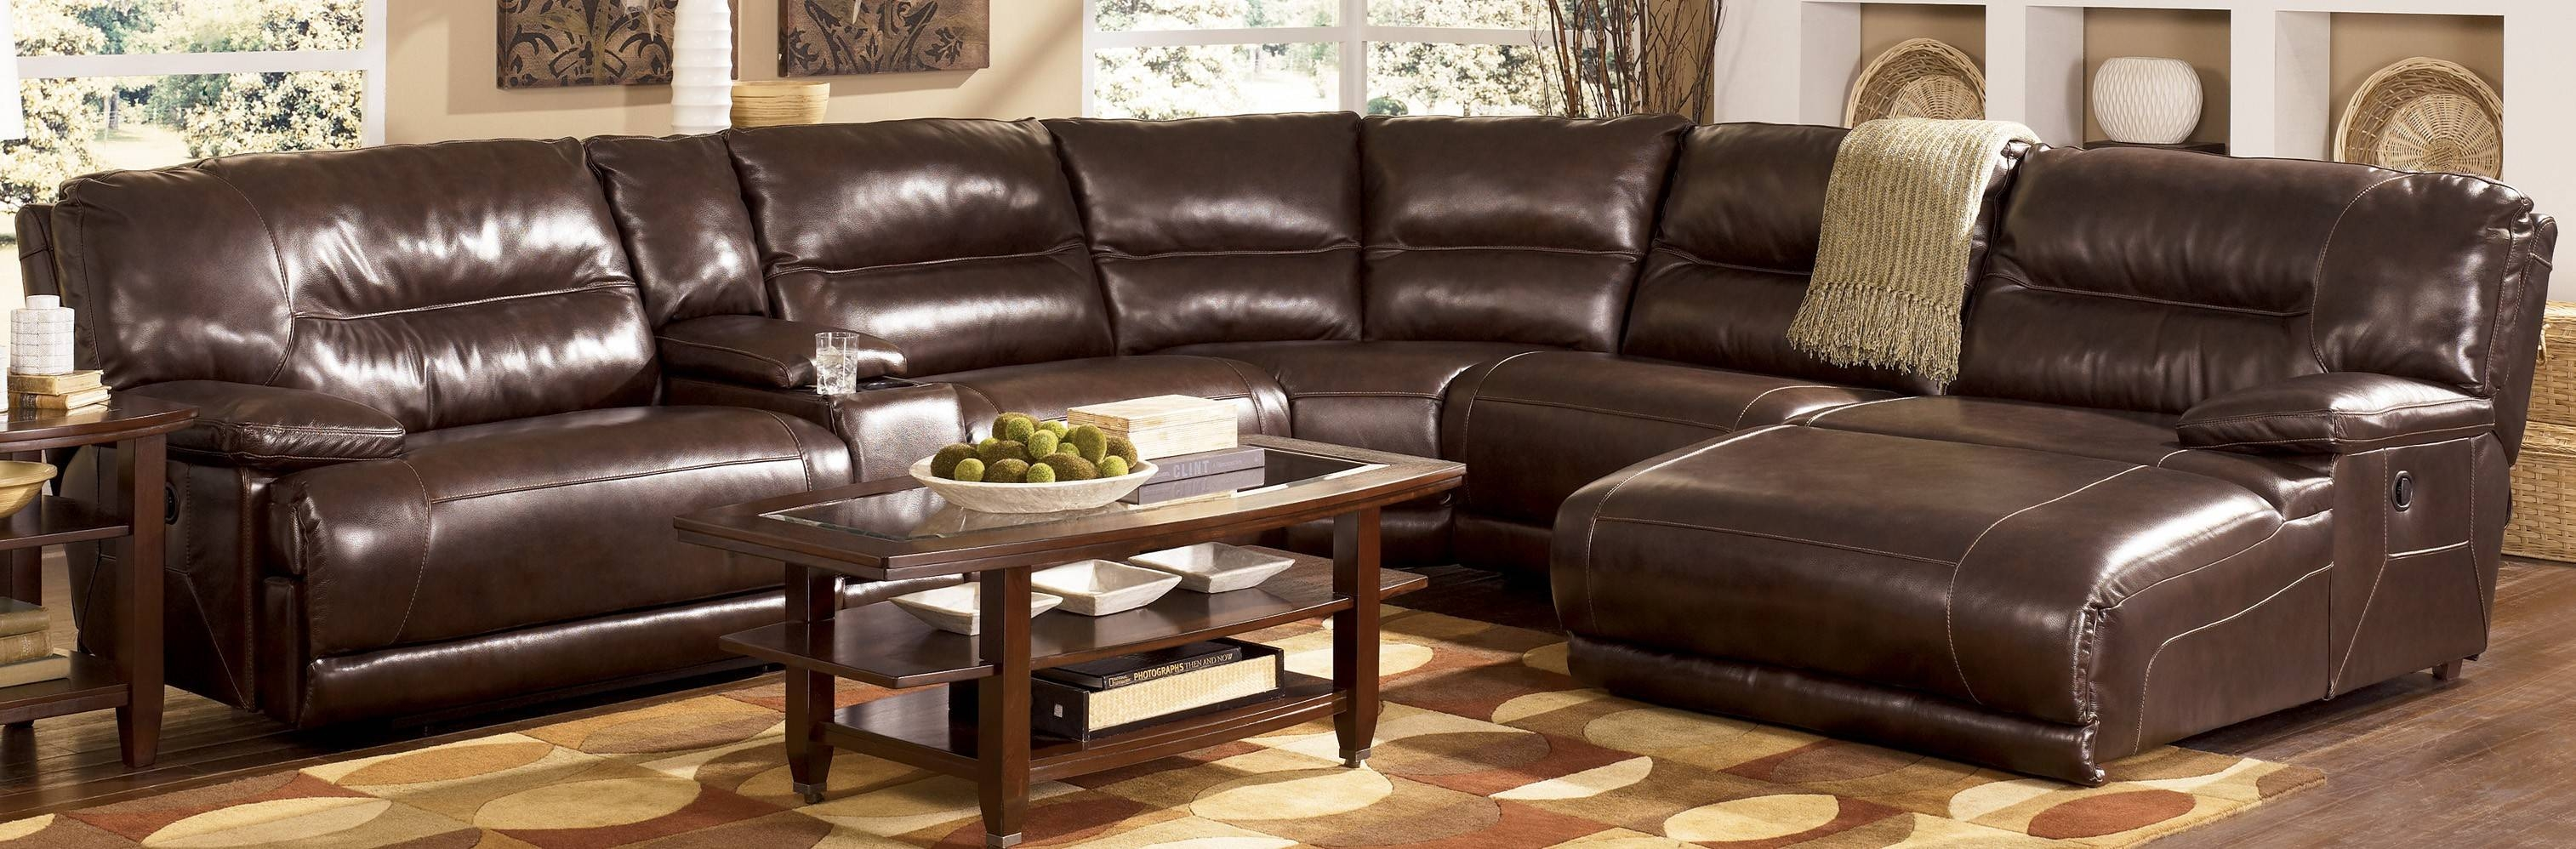 Furniture: Lazy Boy Sectional | Sectional Couches With Recliners inside Lazyboy Sectional Sofas (Image 8 of 25)